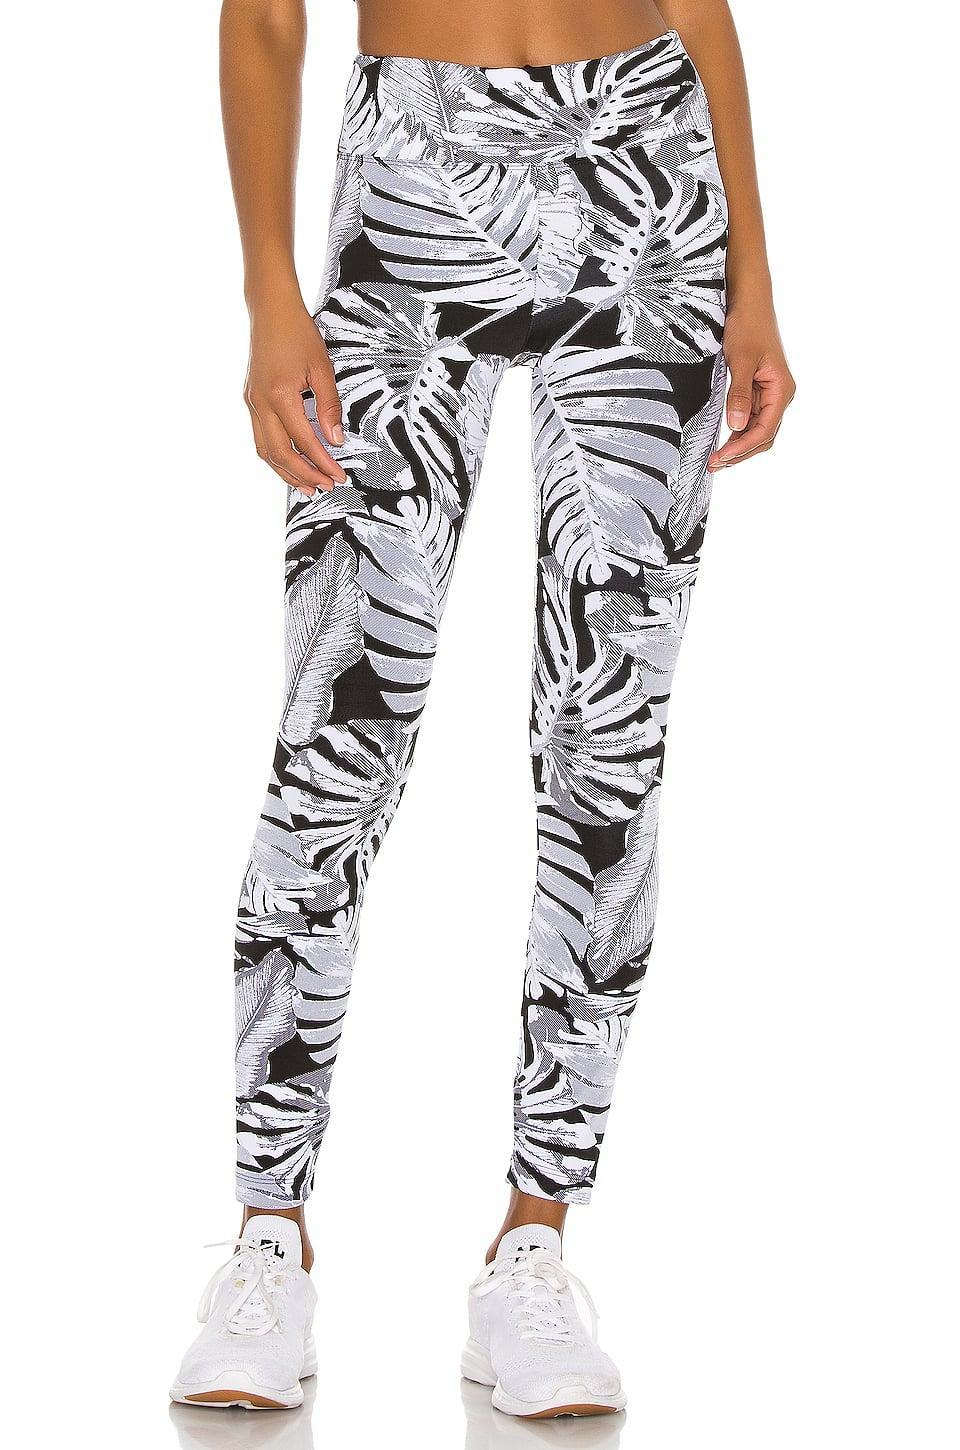 "<p><a href=""https://www.popsugar.com/buy/Koral-Drive-Paradise-High-Rise-Legging-587695?p_name=Koral%20Drive%20Paradise%20High%20Rise%20Legging&retailer=revolve.com&pid=587695&price=82&evar1=fit%3Aus&evar9=47603352&evar98=https%3A%2F%2Fwww.popsugar.com%2Fphoto-gallery%2F47603352%2Fimage%2F47603354%2FKoral-Drive-Paradise-High-Rise-Legging&list1=shopping%2Cworkout%20clothes%2Csale%2Cproducts%20under%20%24100%2Csale%20shopping&prop13=api&pdata=1"" class=""link rapid-noclick-resp"" rel=""nofollow noopener"" target=""_blank"" data-ylk=""slk:Koral Drive Paradise High Rise Legging"">Koral Drive Paradise High Rise Legging</a> ($82, originally $125)</p>"